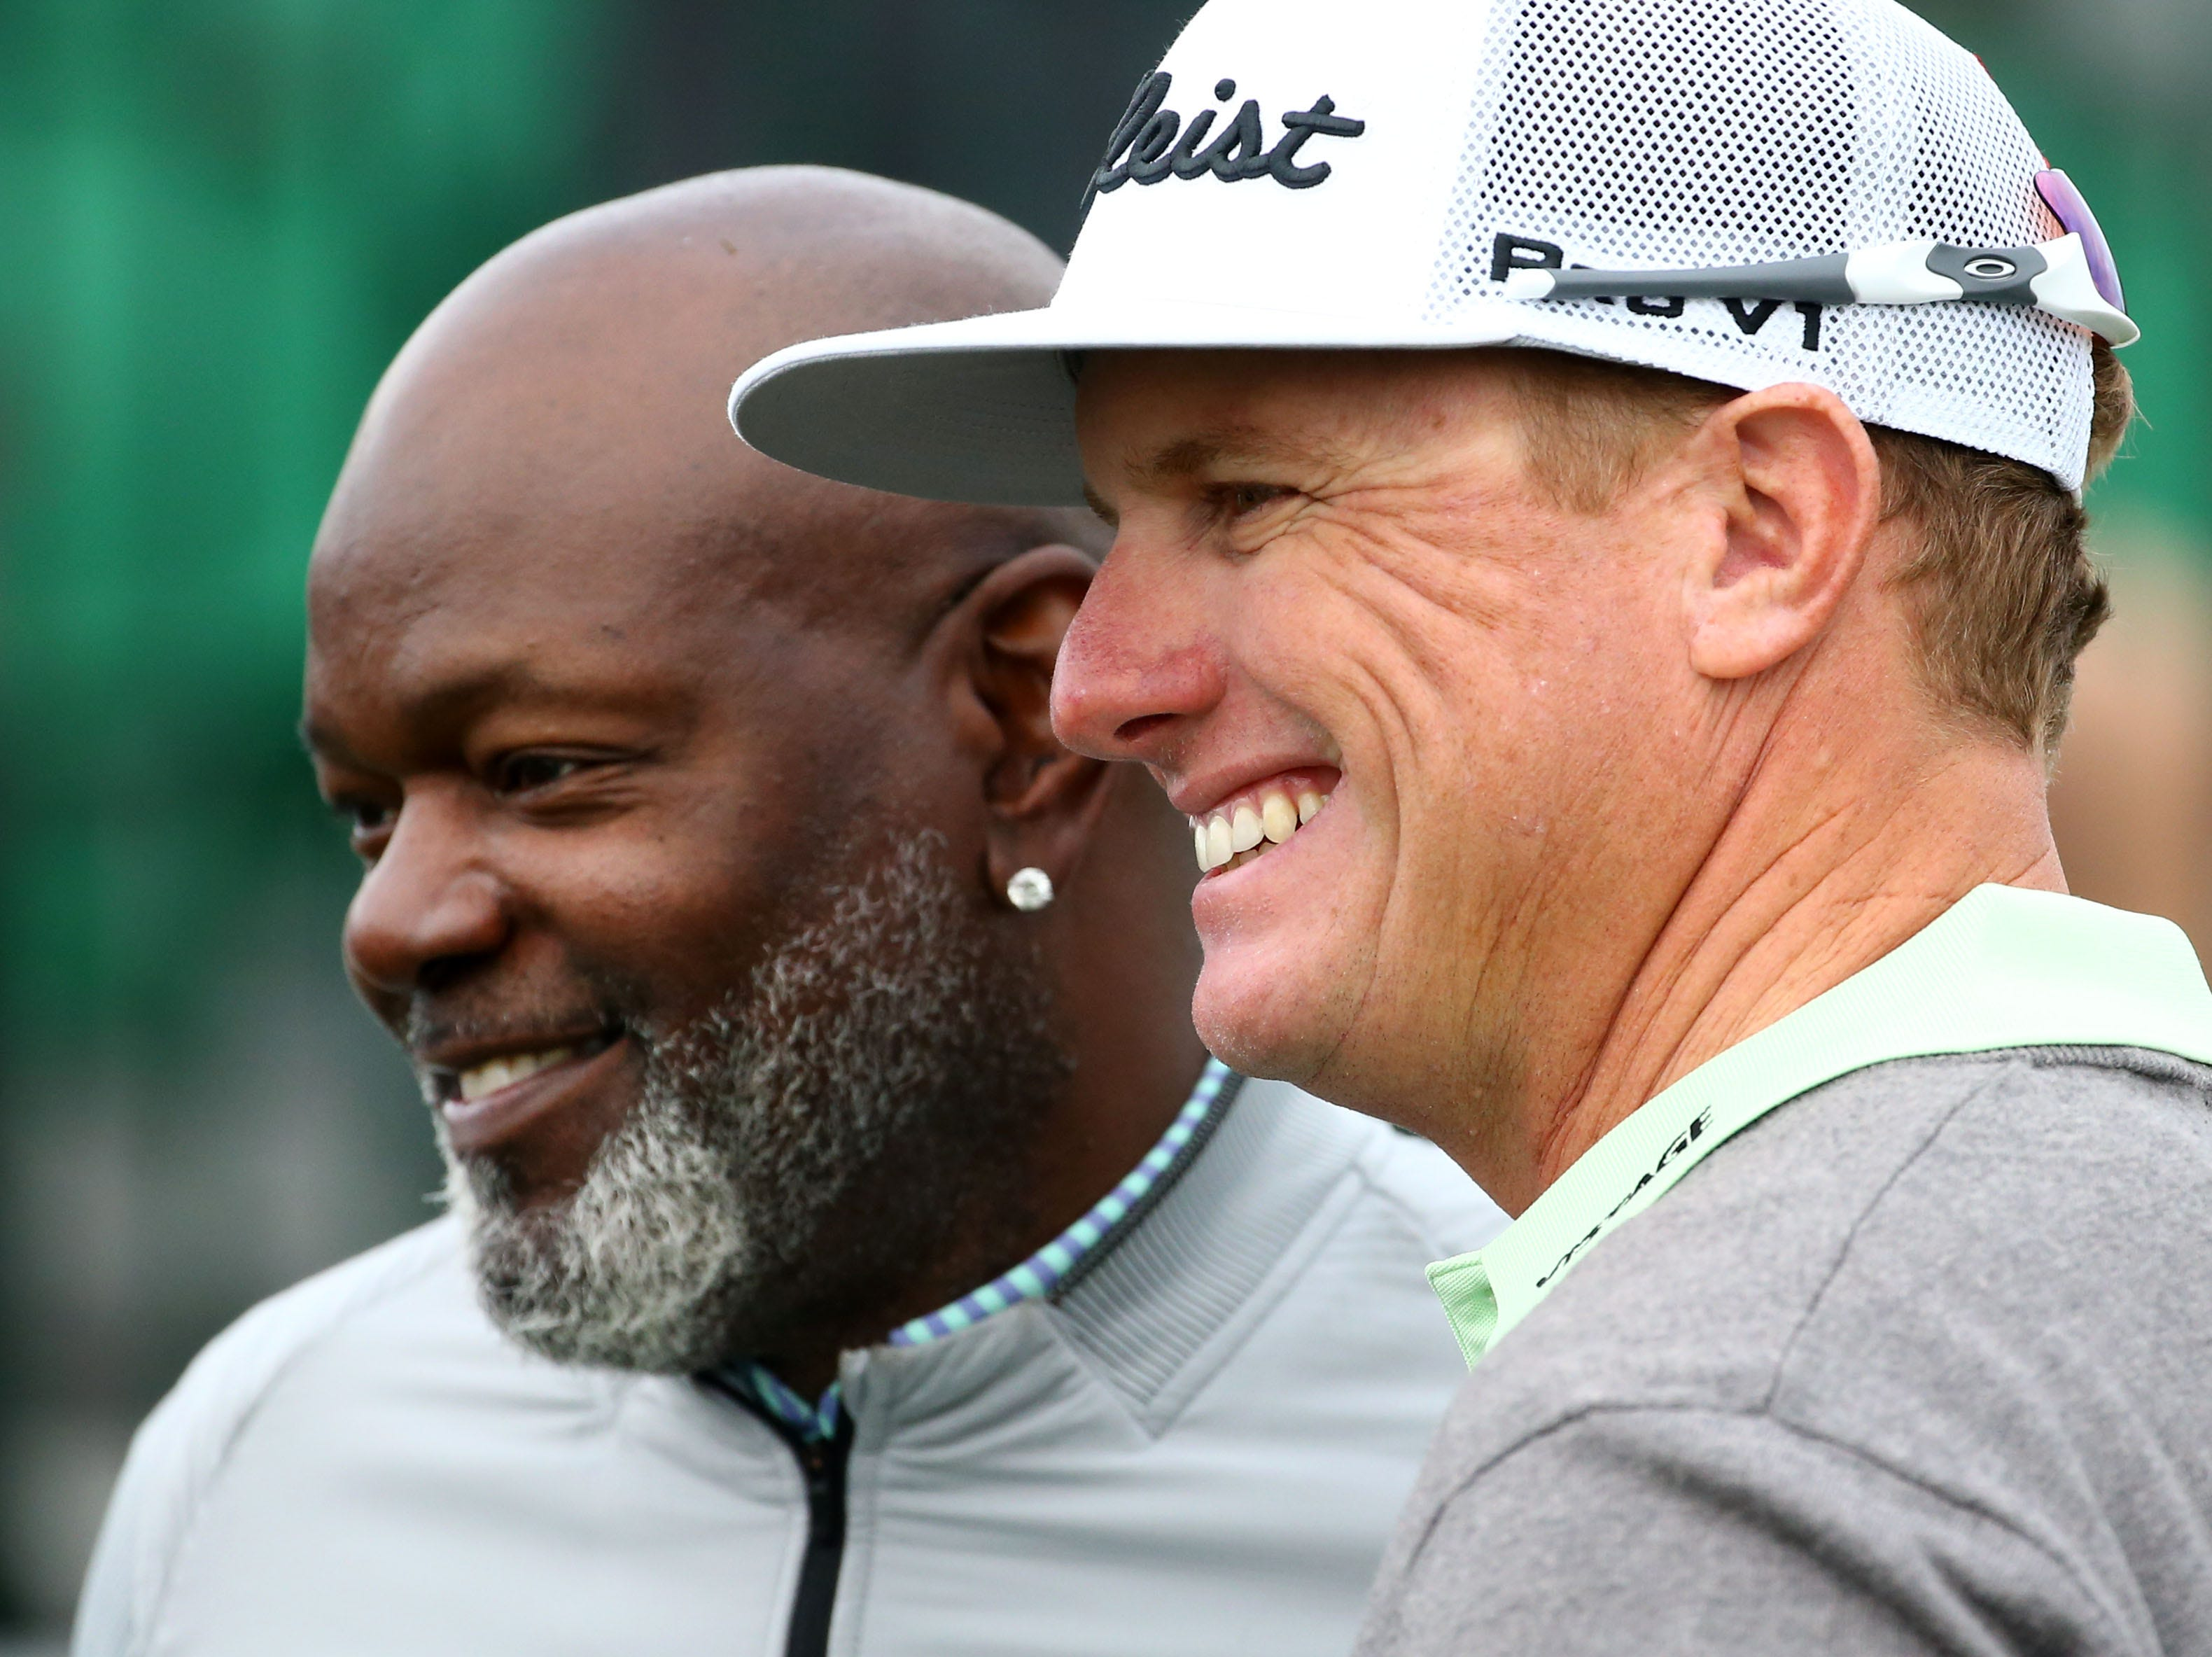 Charley Hoffman and Emmitt Smith pose on the first tee during the Annexus Pro-Am on Jan. 30 at the TPC Scottsdale Stadium Course.